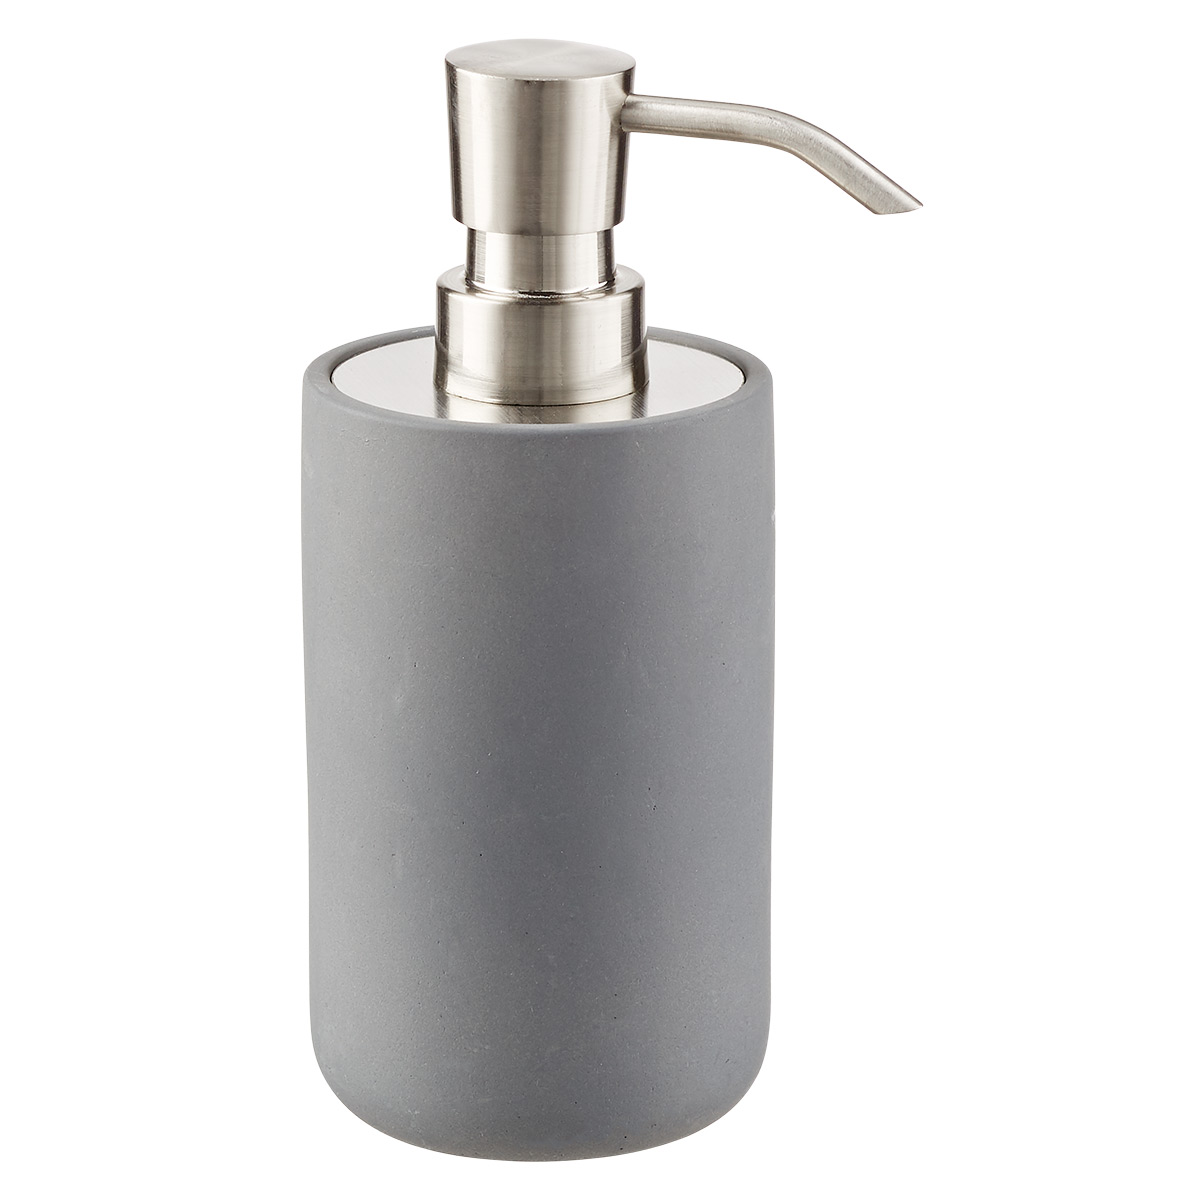 5 oz. Concrete Soap Dispenser